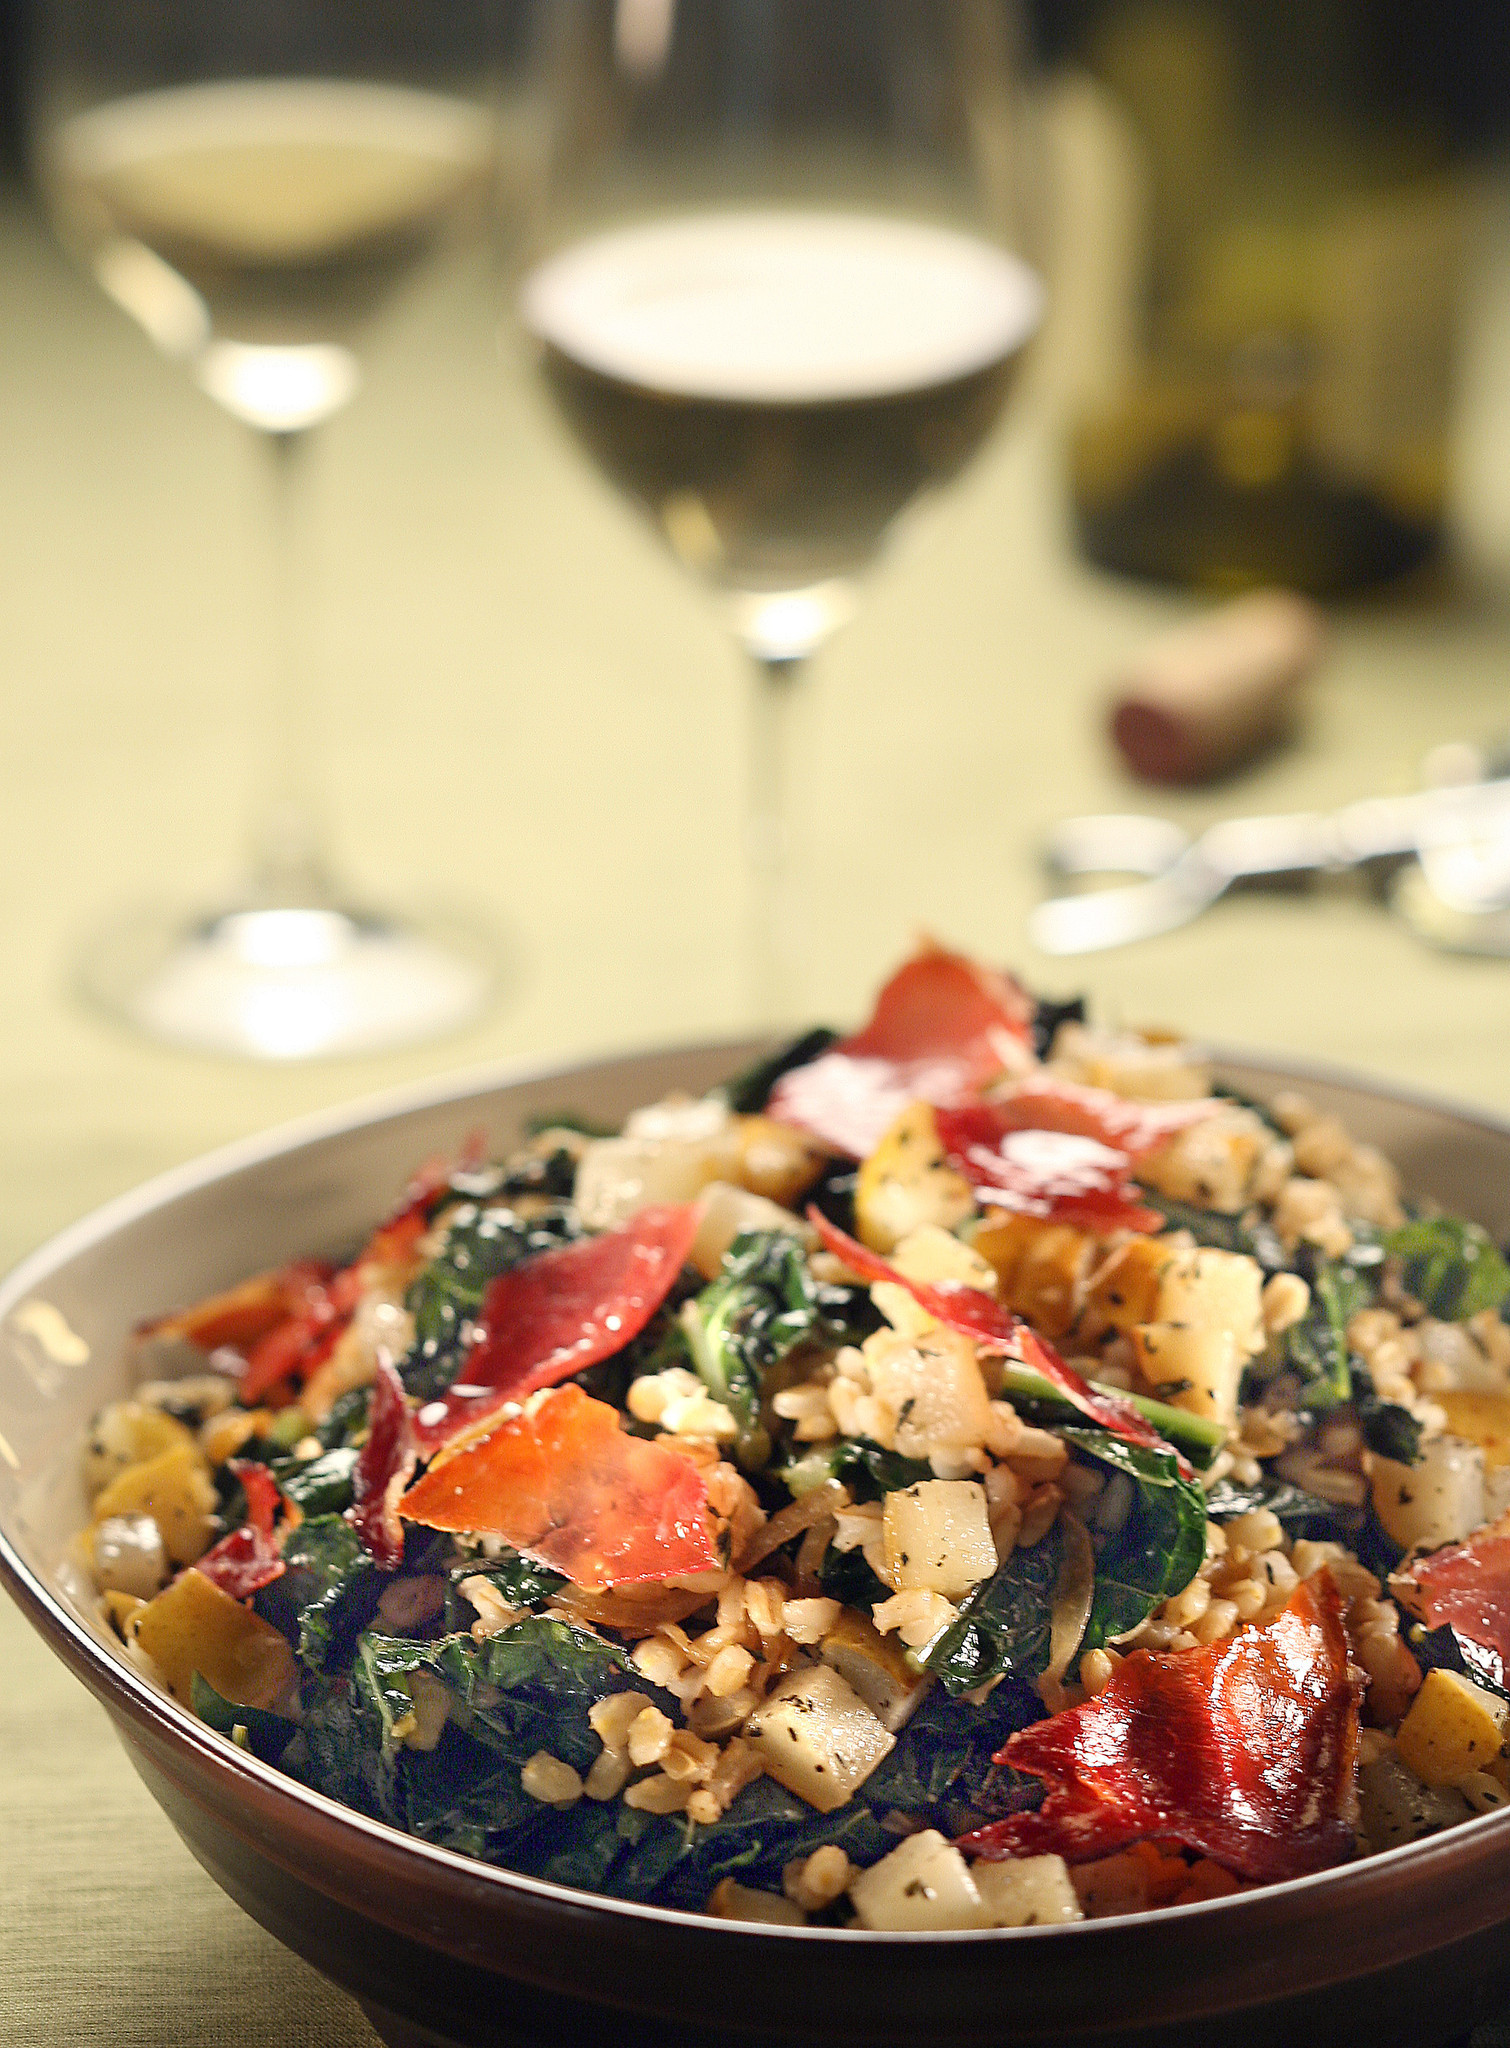 Photos: 97 great Thanksgiving recipes - Kale and barley salad with roasted pears